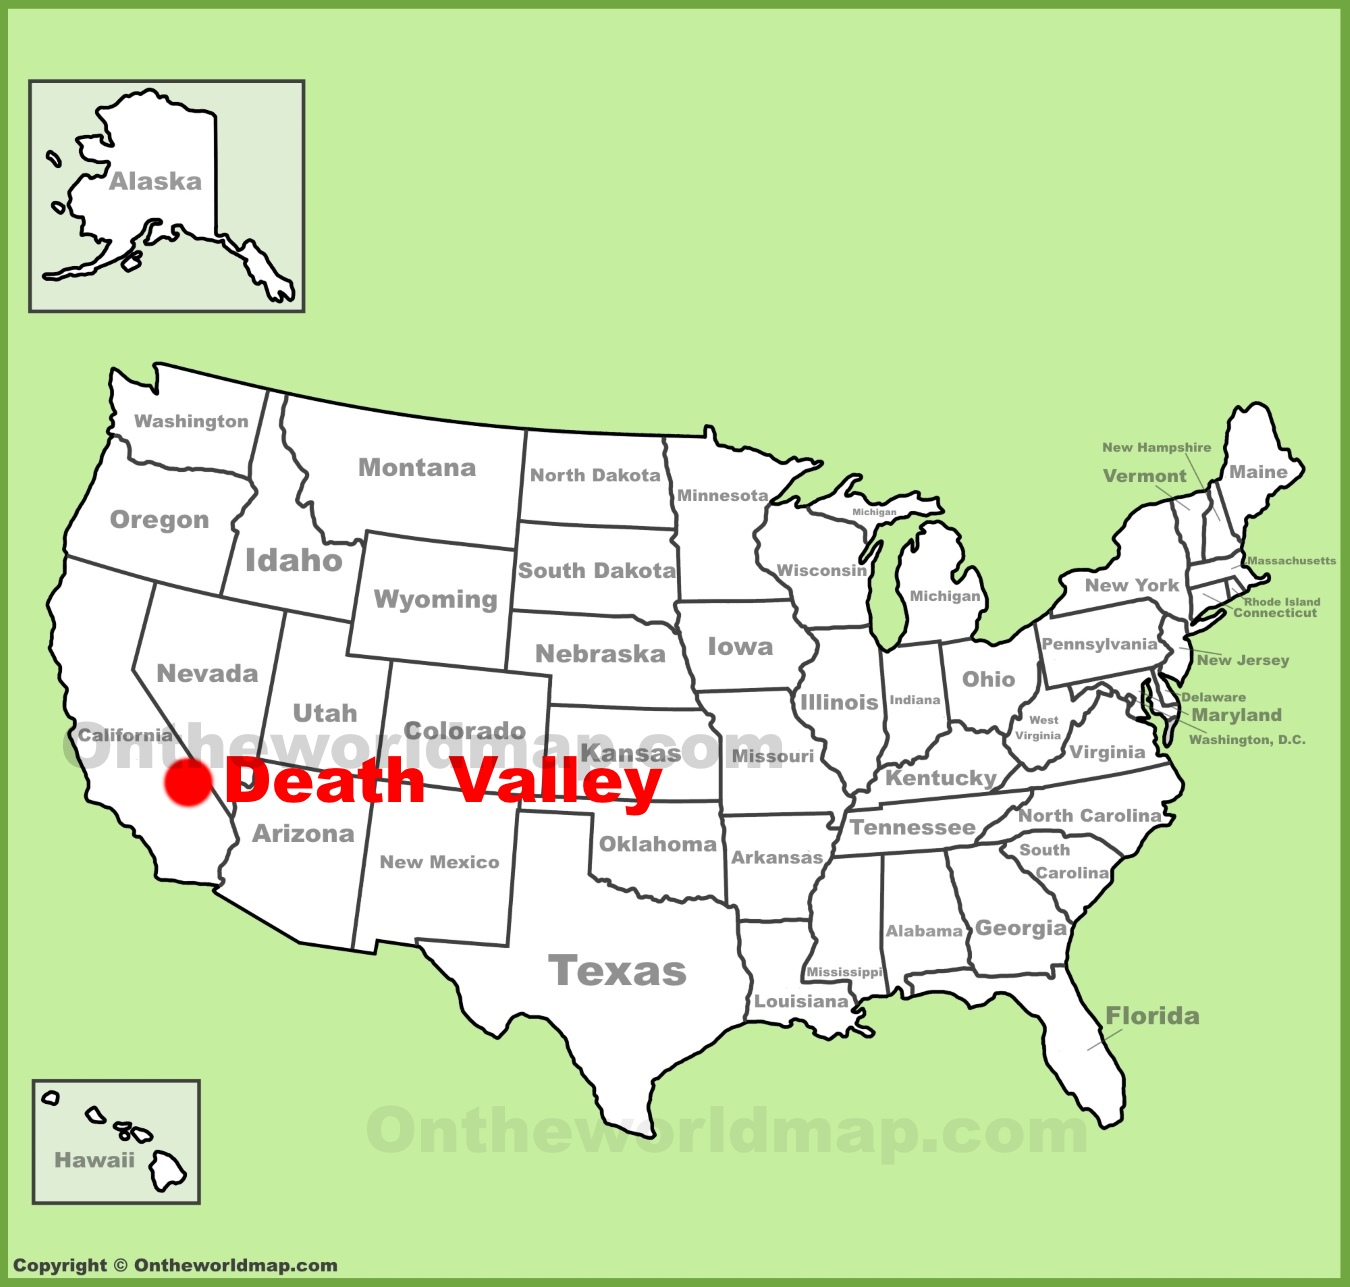 Death Valley Map Death Valley location on the U.S. Map Death Valley Map